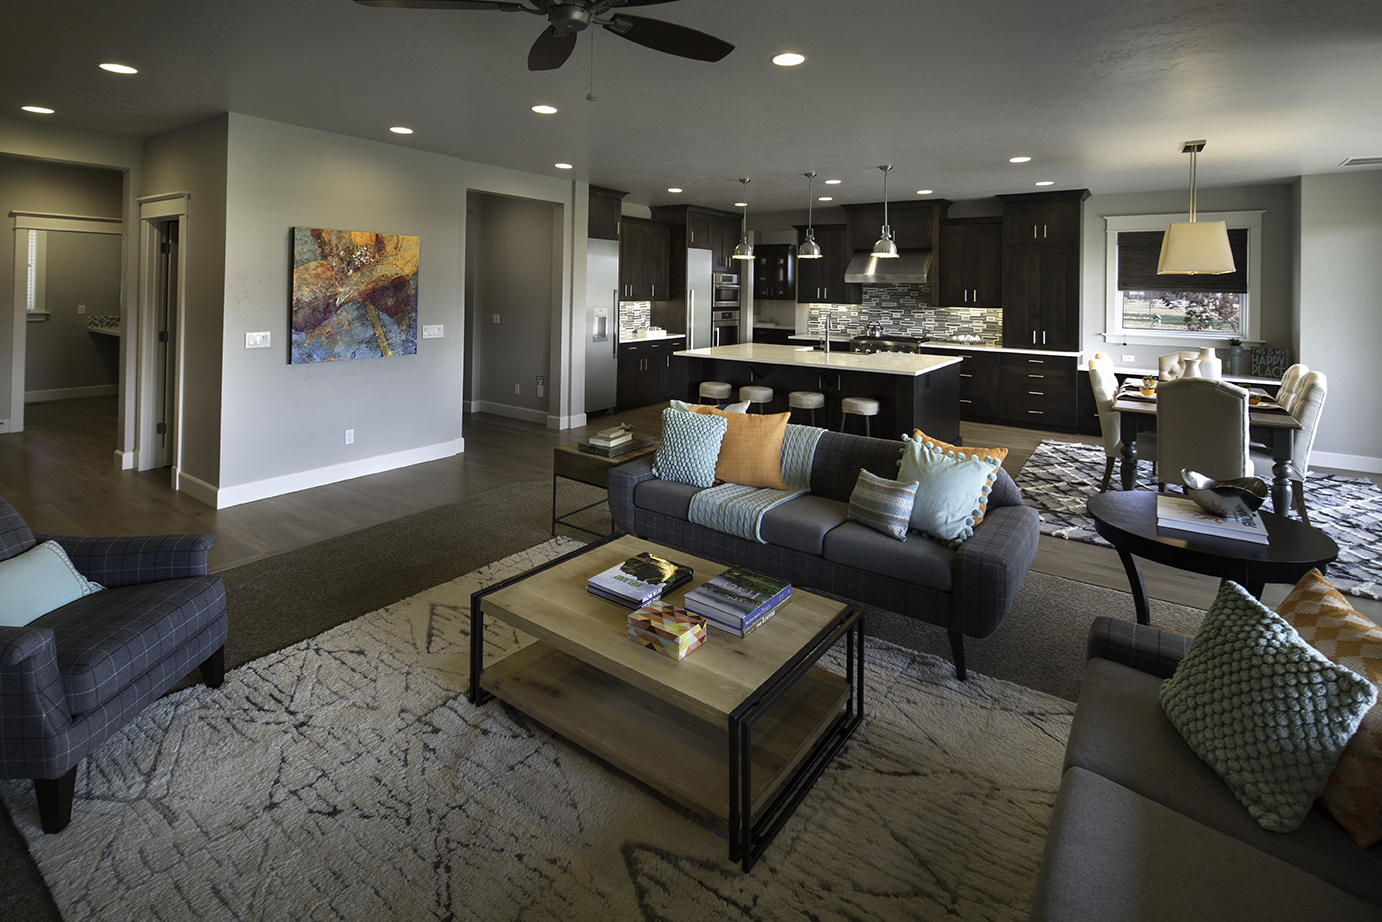 Sunny Afternoon living room and kitchen.jpg